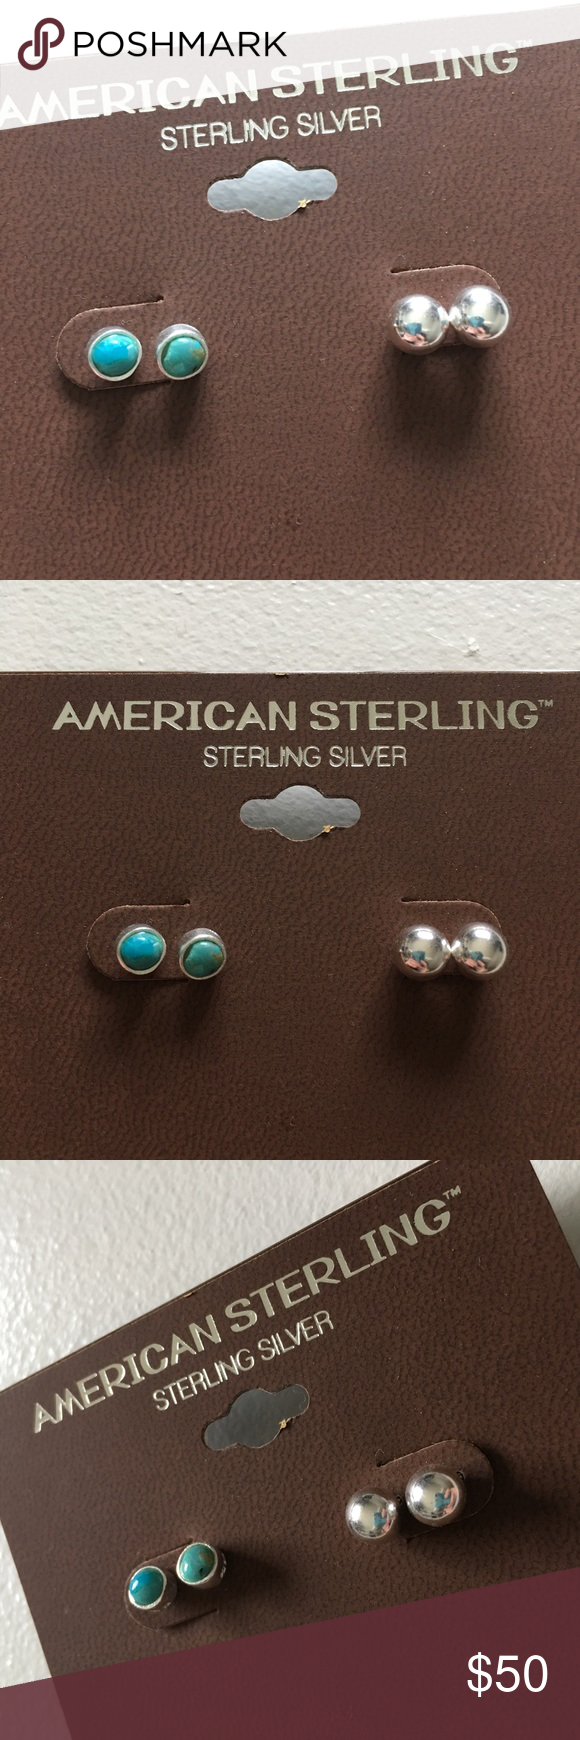 NWT Sterling Silver Turquoise Stud Earrings Set Brand new with tags. American Sterling Jewelry Earrings